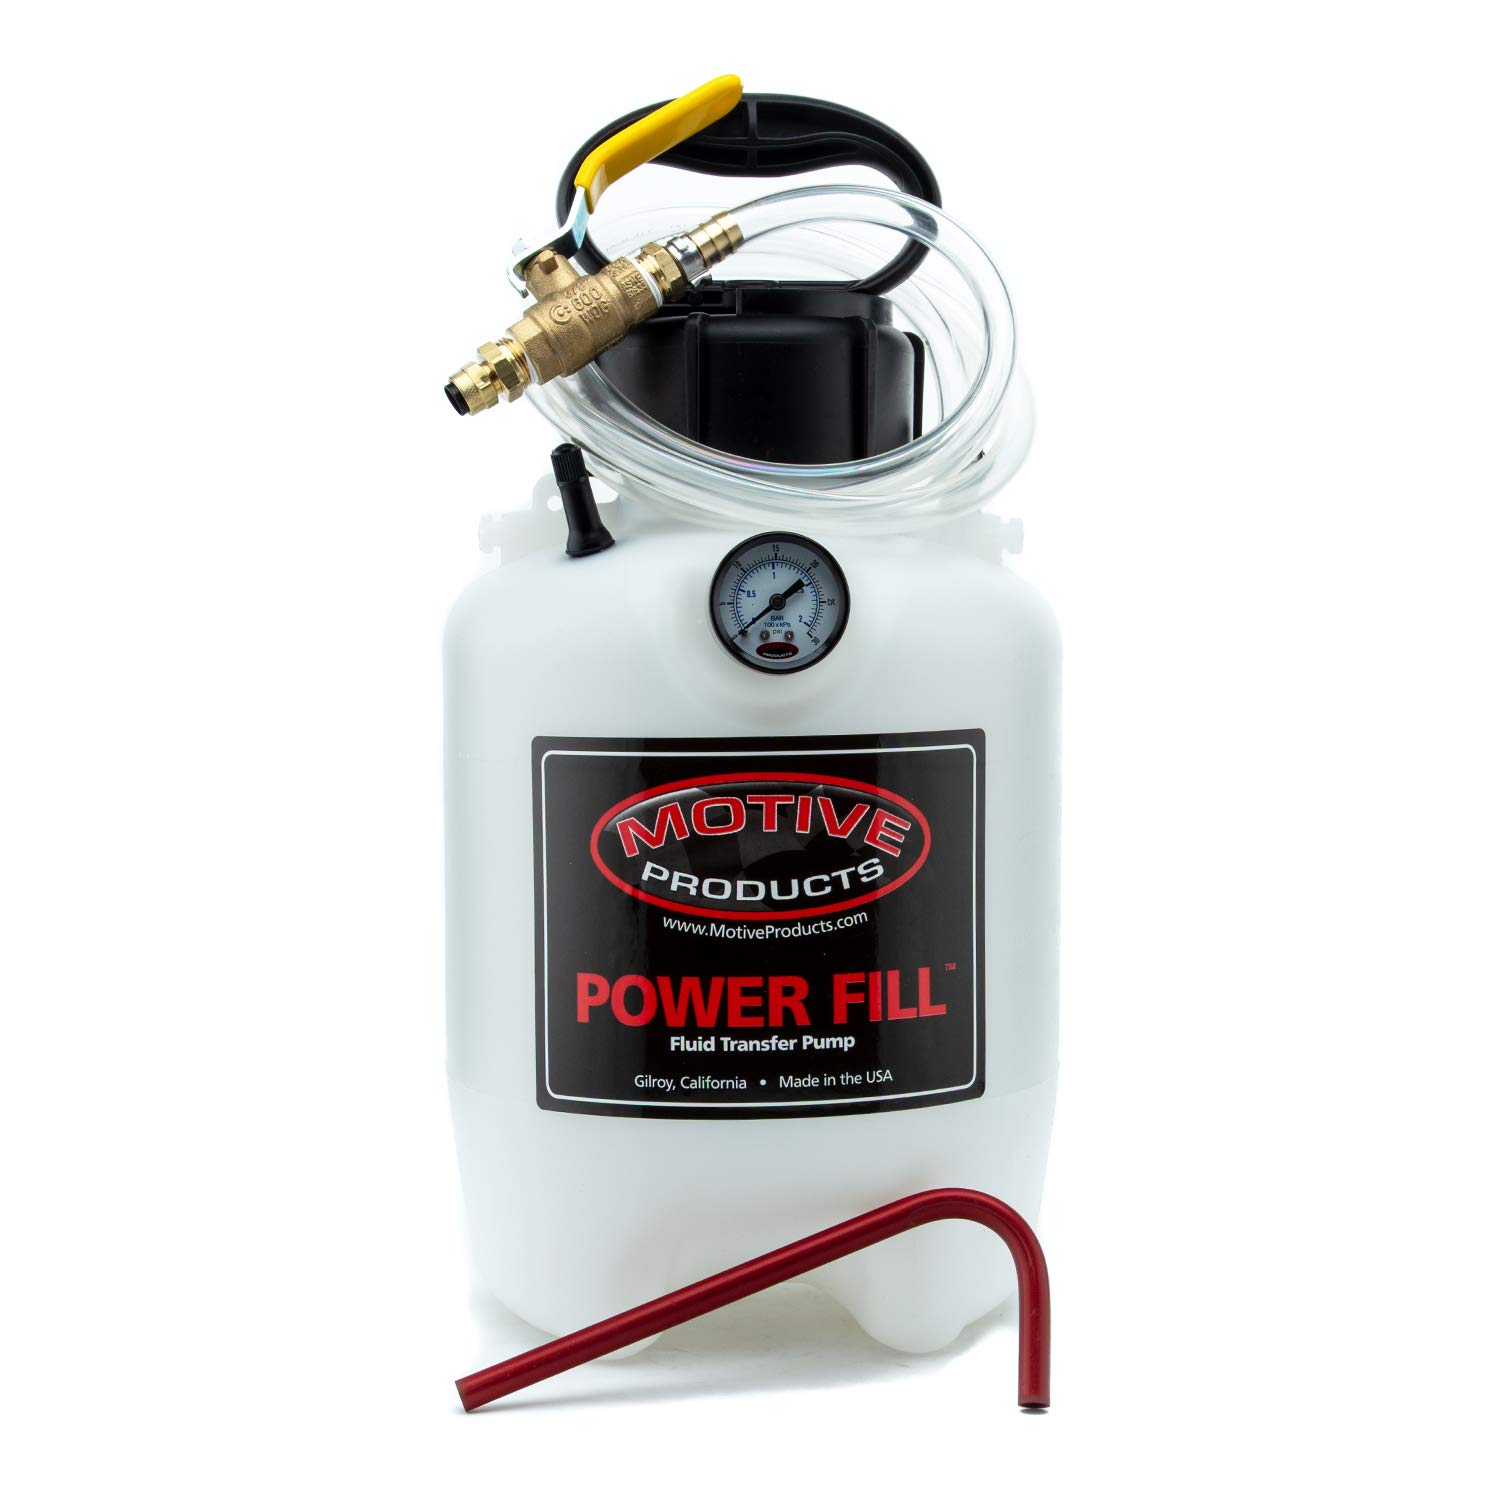 Motive Products 1735 Power Fill Pro Transfer Pump by Motive Products (Image #1)